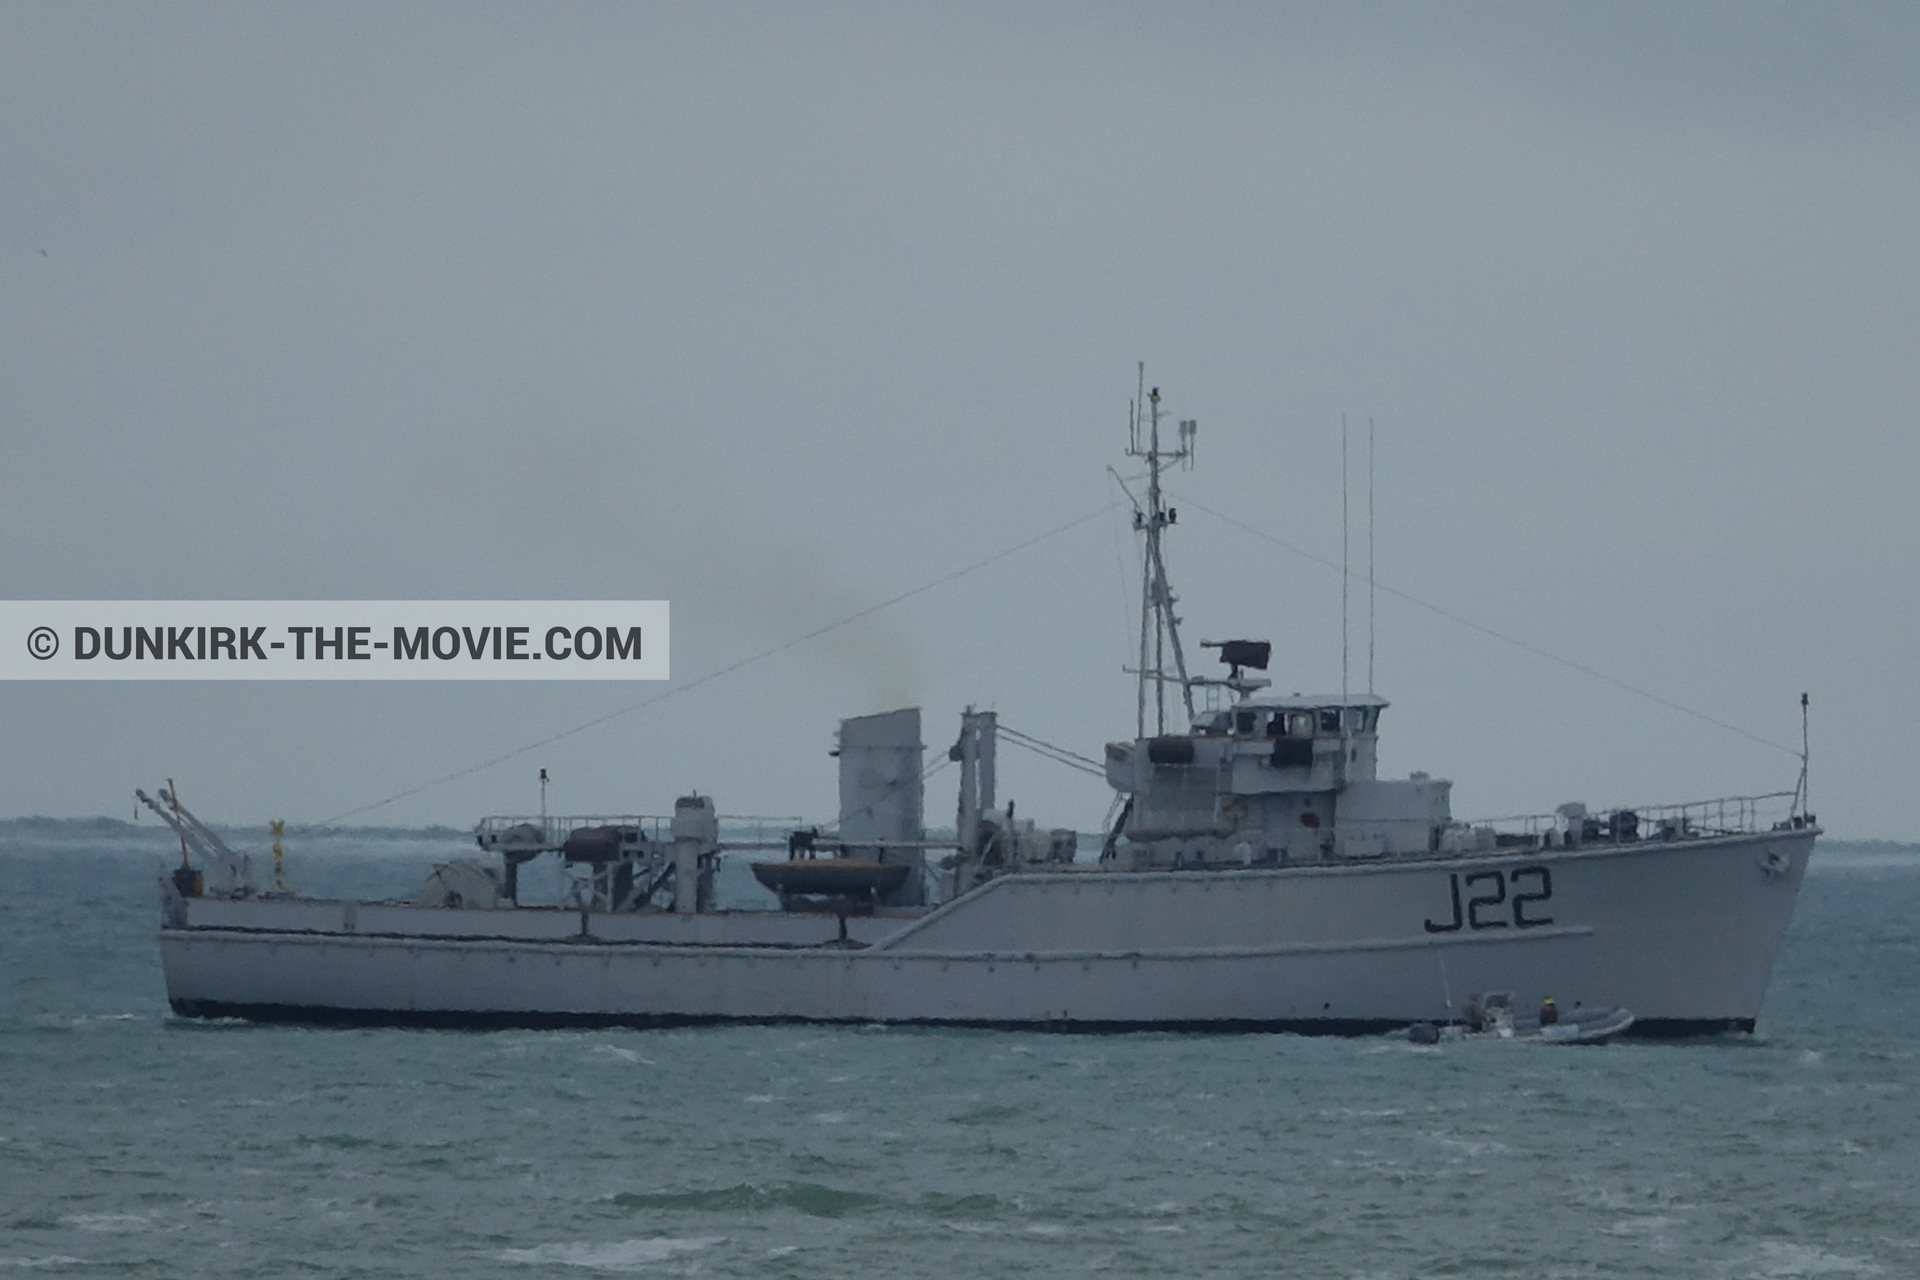 Picture with boat, grey sky, J22 -Hr.Ms. Naaldwijk, calm sea,  from behind the scene of the Dunkirk movie by Nolan